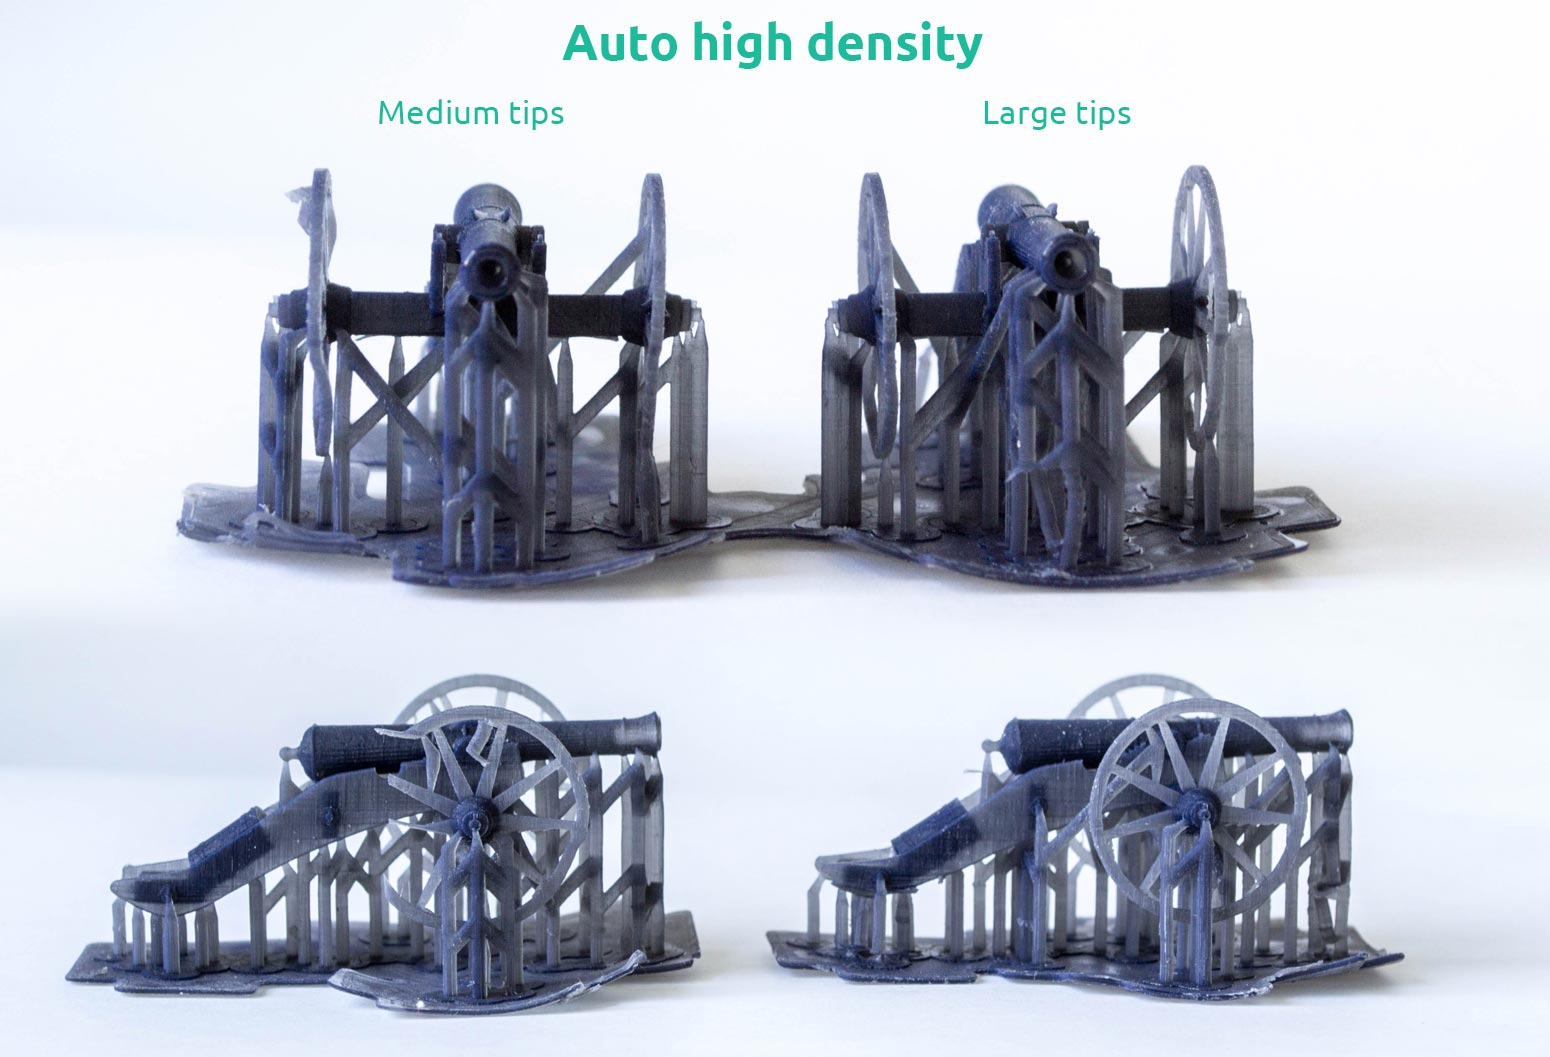 AmeraLabs key principles of 3D printing supports that work experiment moai 3D printed cannons high density